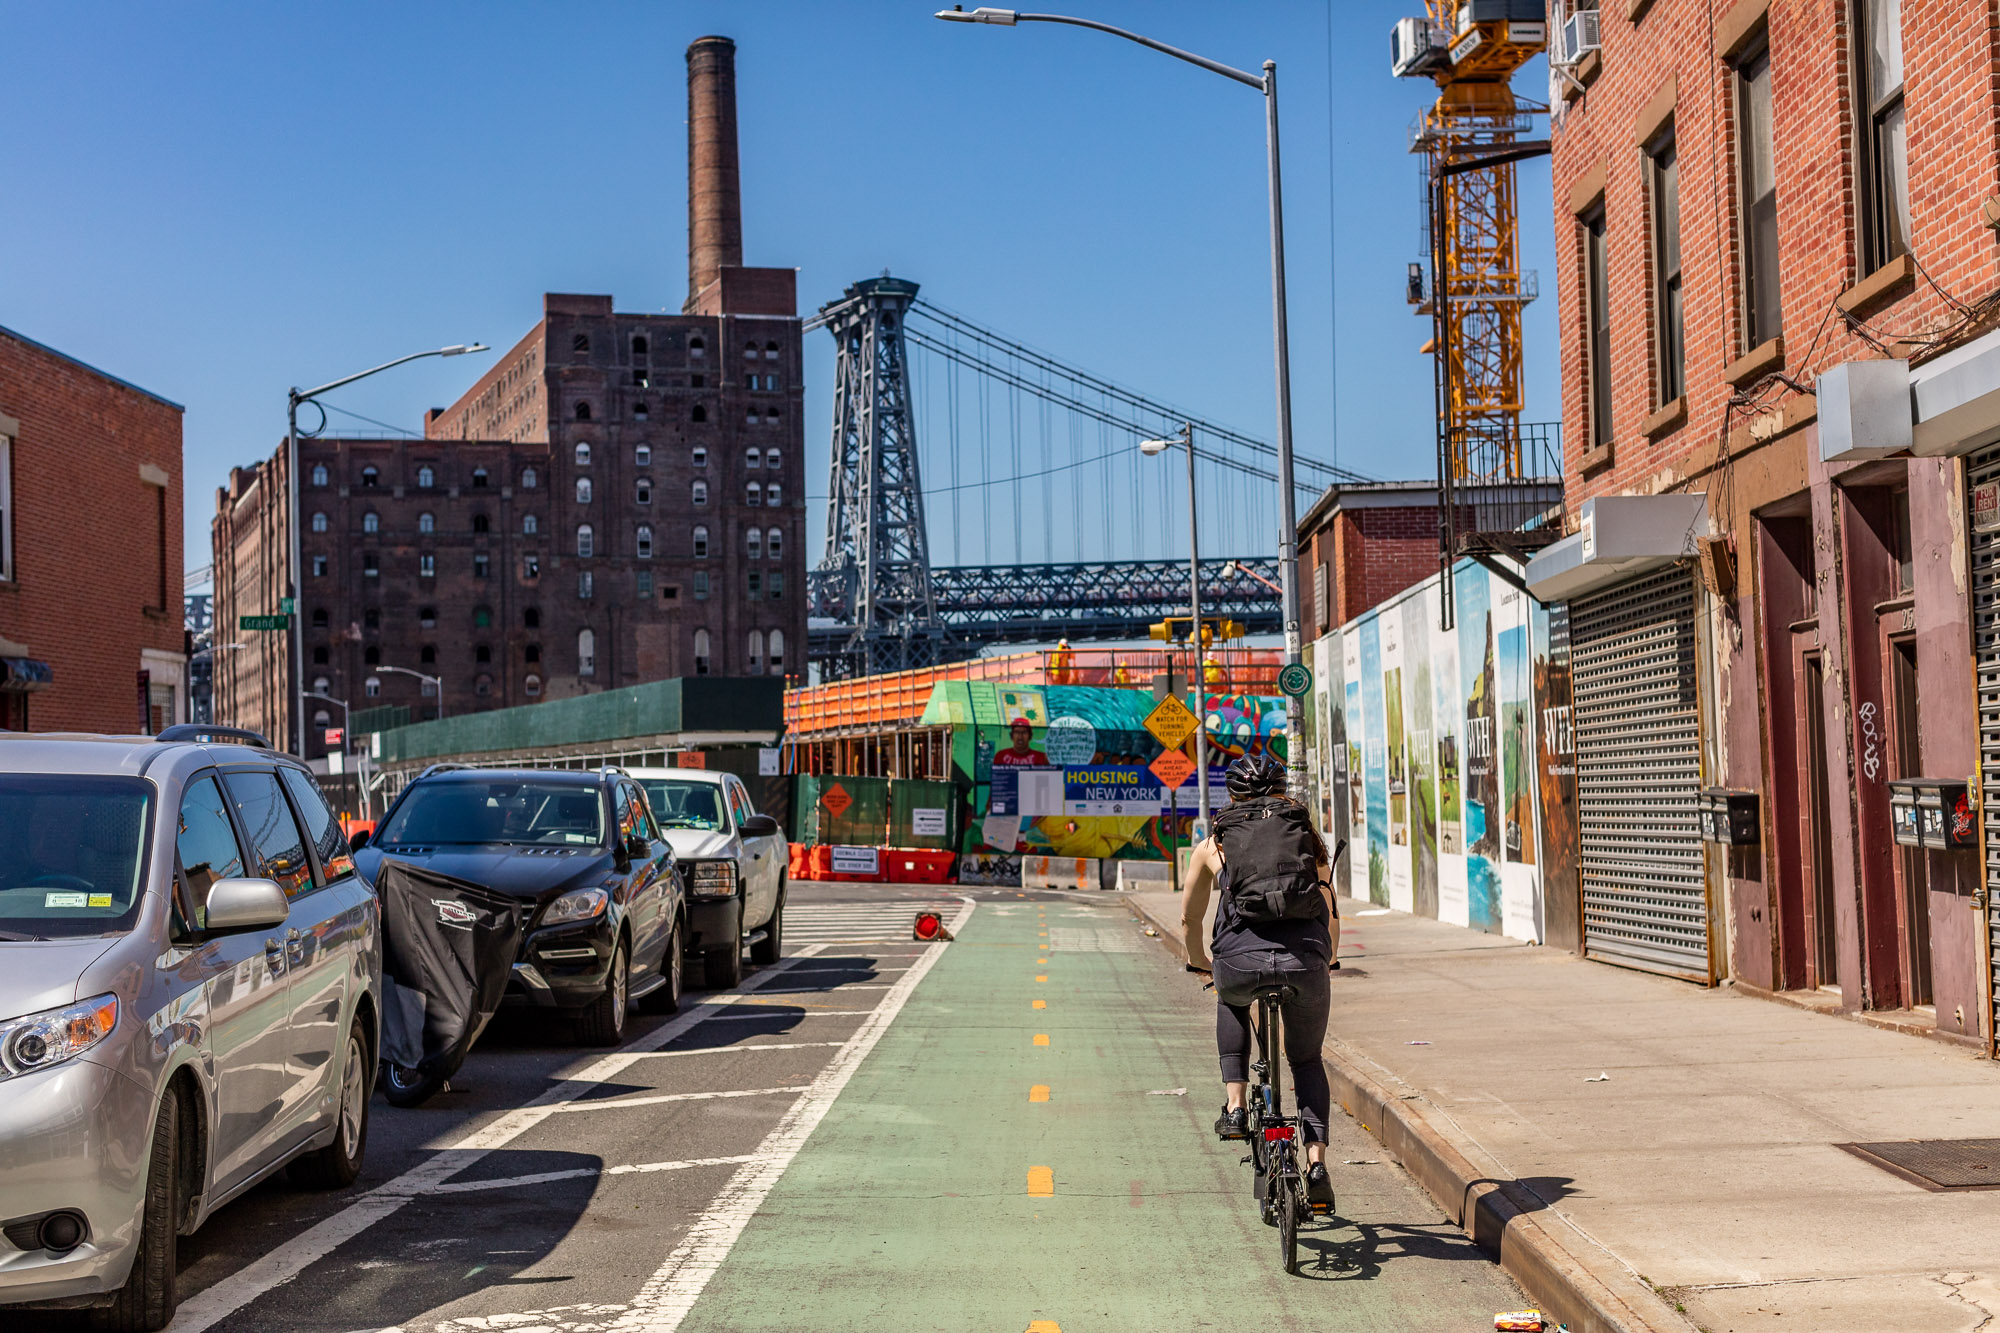 A bike lane heading south along Kent Avenue, with the Williamsburg Bridge and Domino Sugar Refinery in the background.